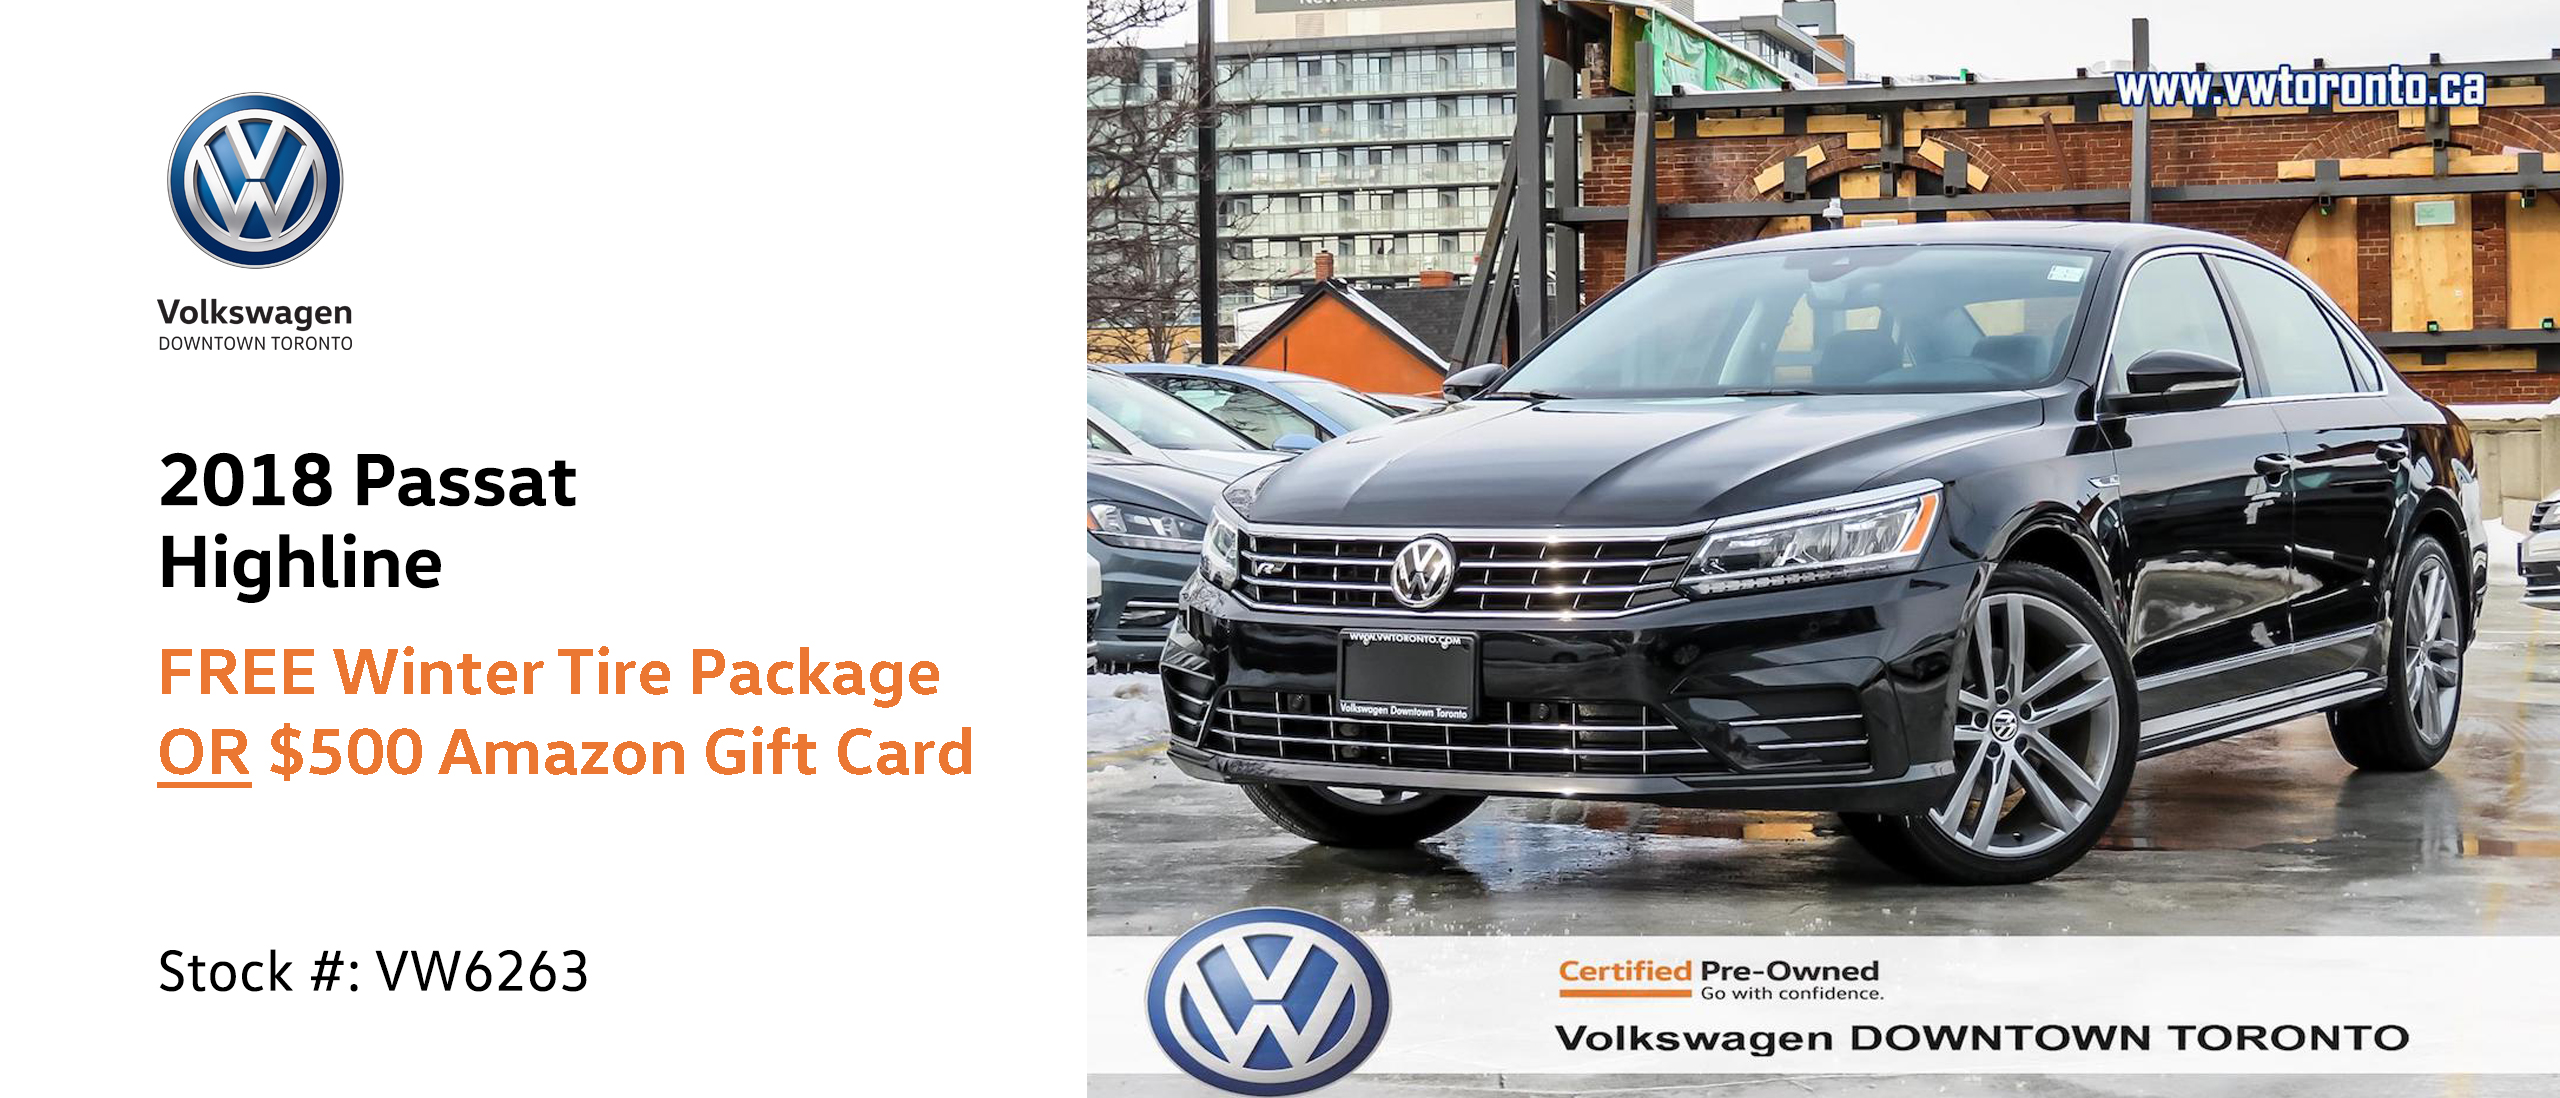 Volkswagen Downtown Toronto >> Actual Final Vw6263 Demo 2 Volkswagen Downtown Toronto